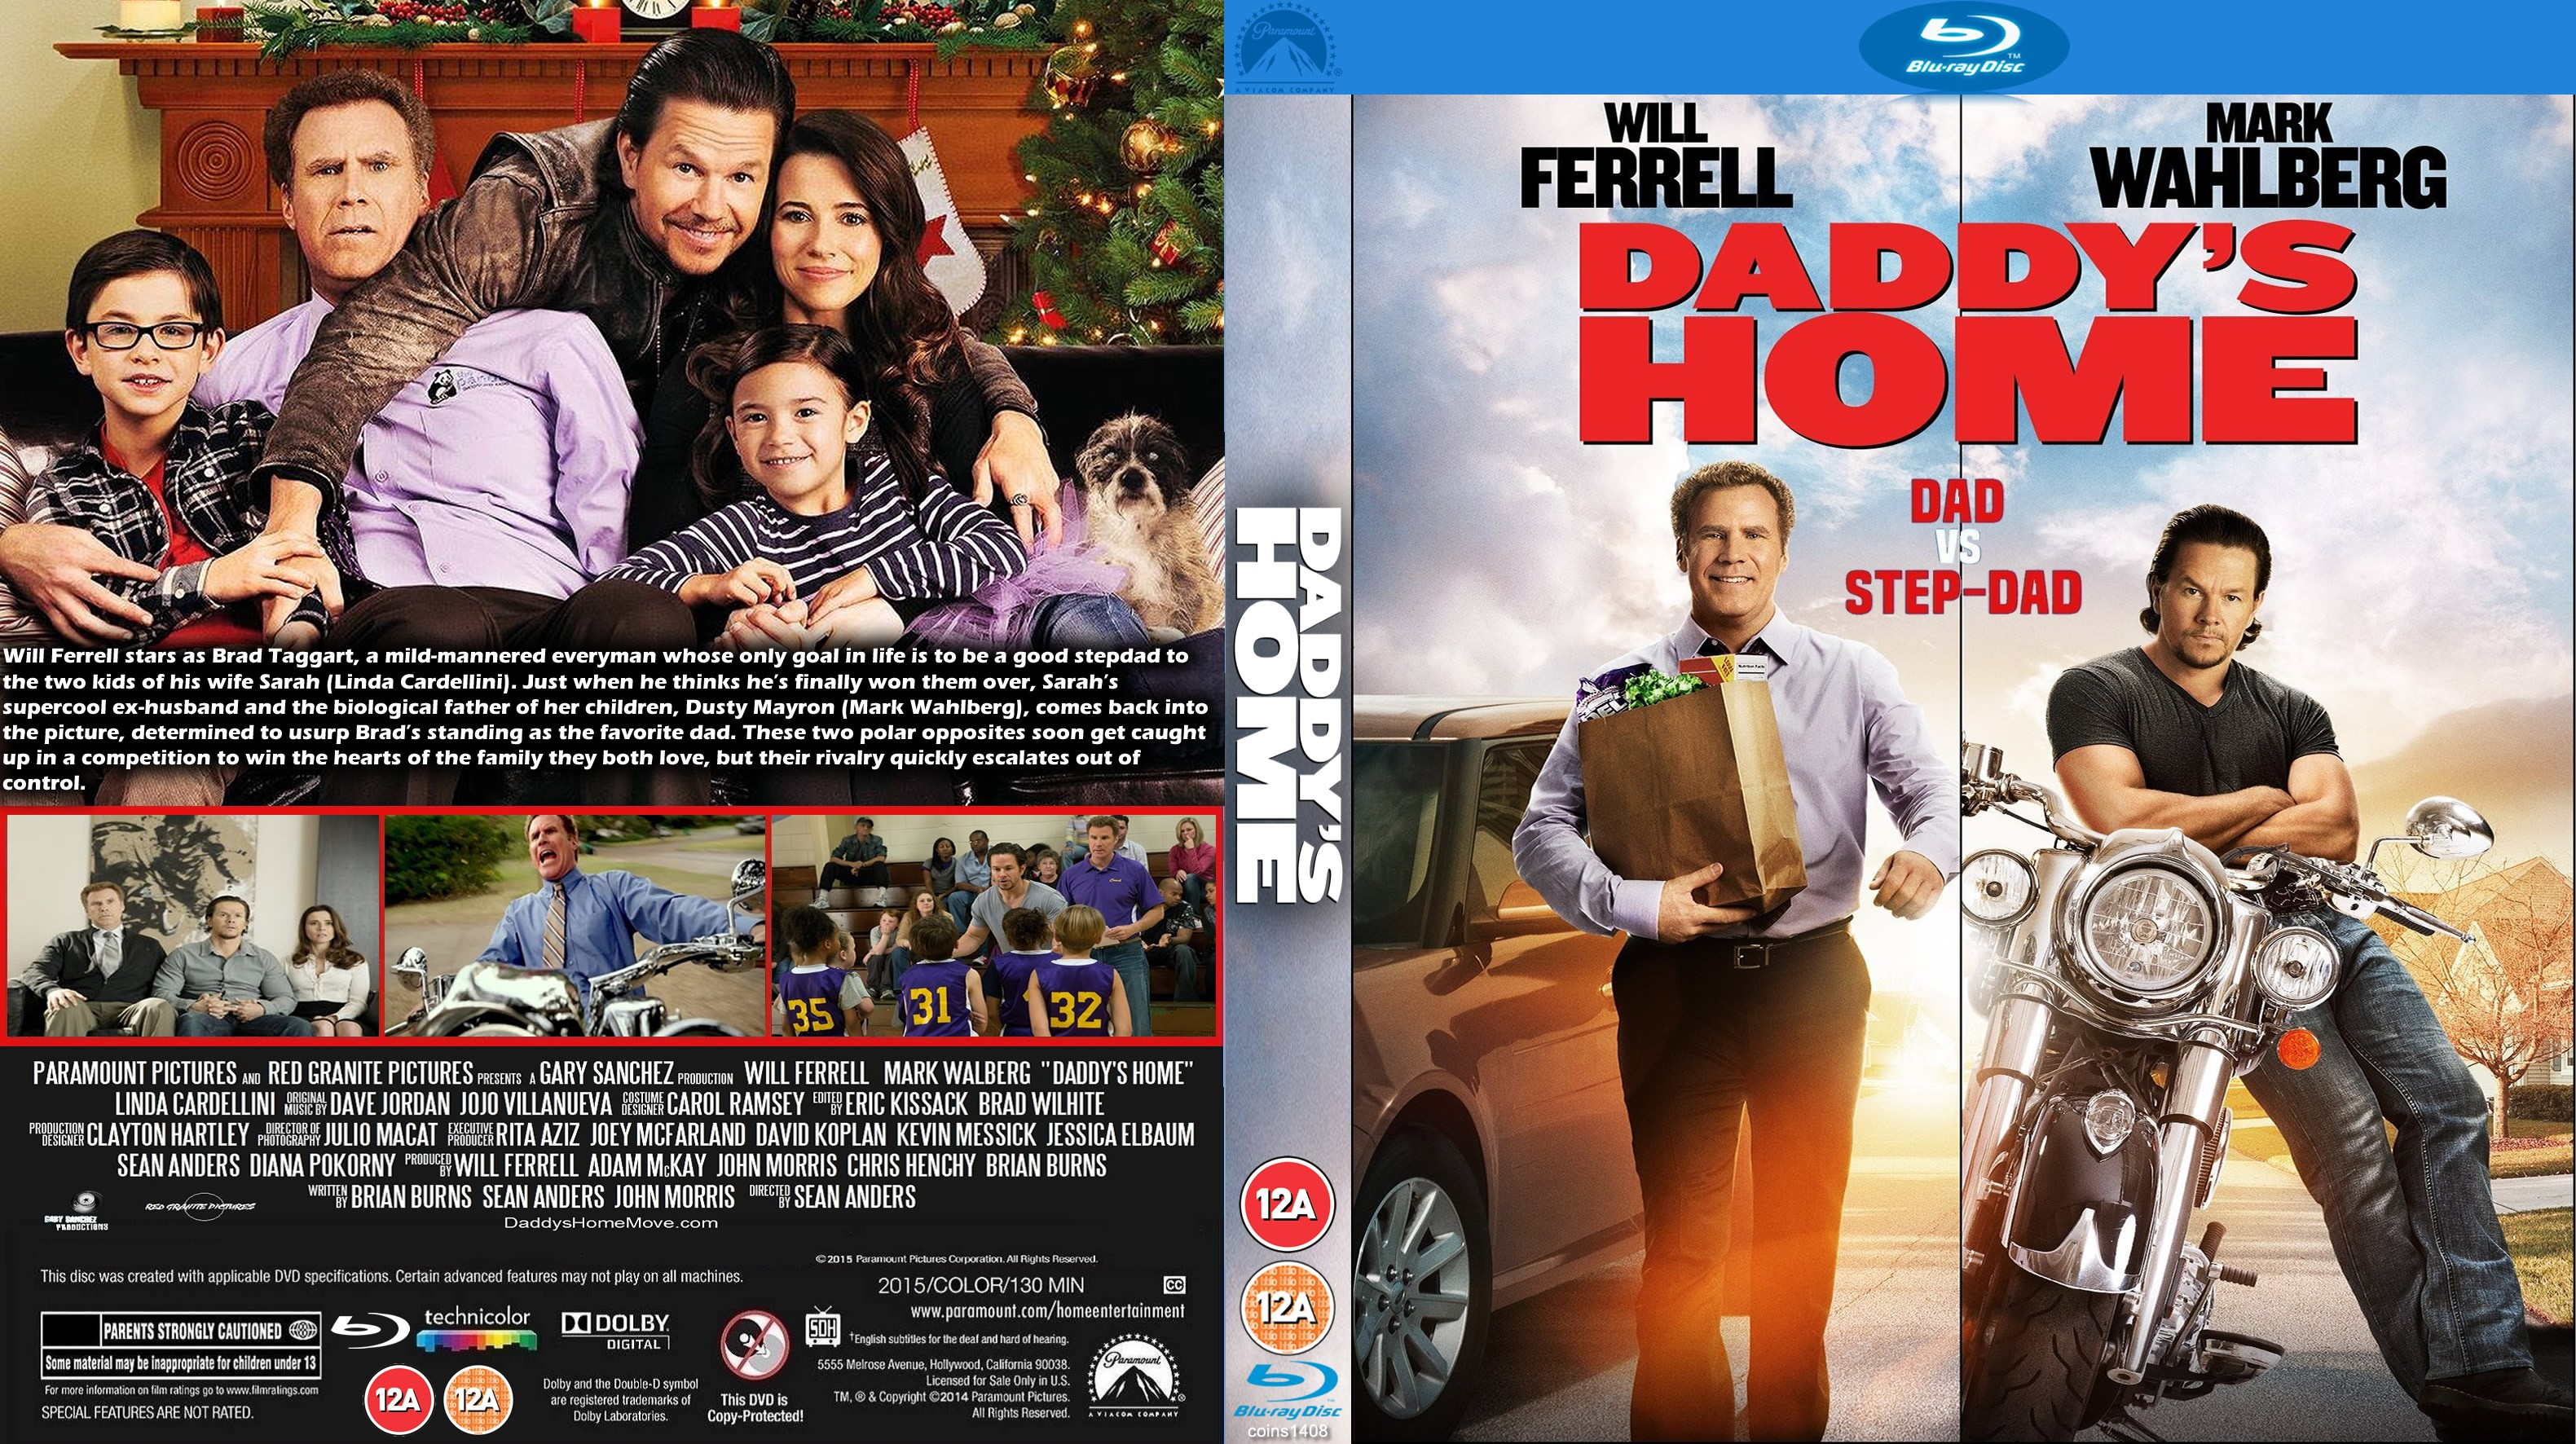 daddys home 2015 r1 blu ray dvd covers cover century over rh covercentury com home alone dvd cover home again dvd cover